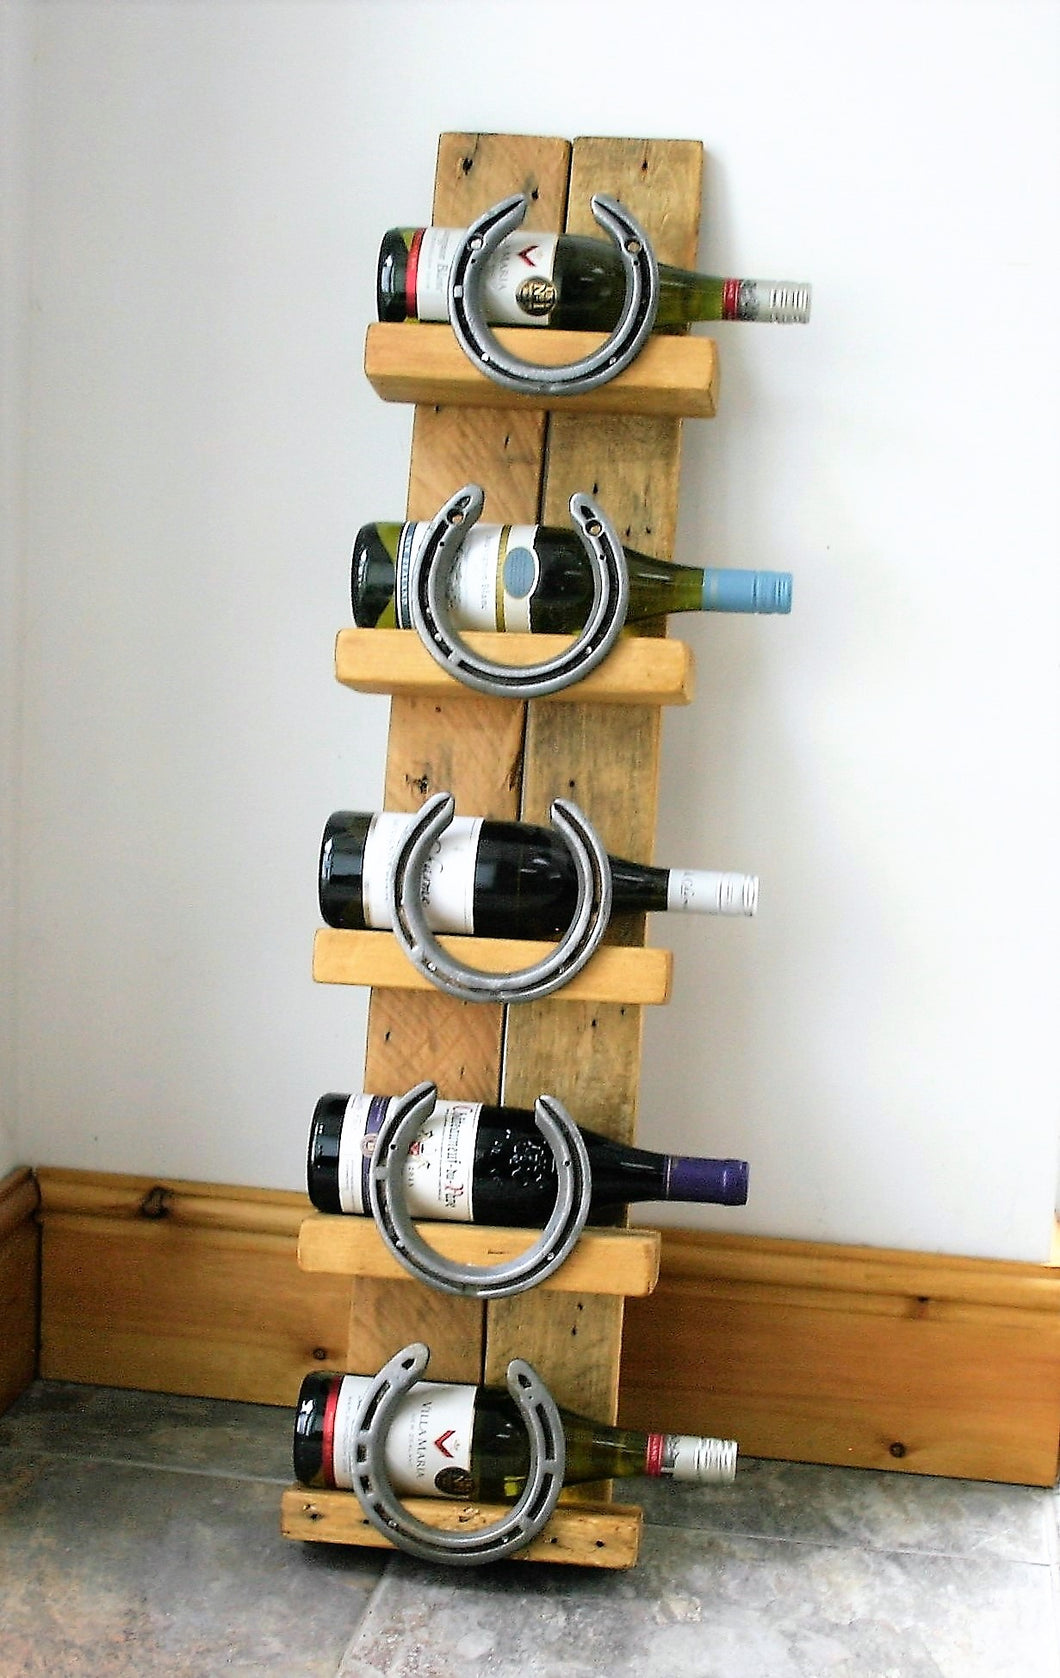 Image of Cheltenham Horseshoe Wine Bottle Display Stand With Bottles of Wine